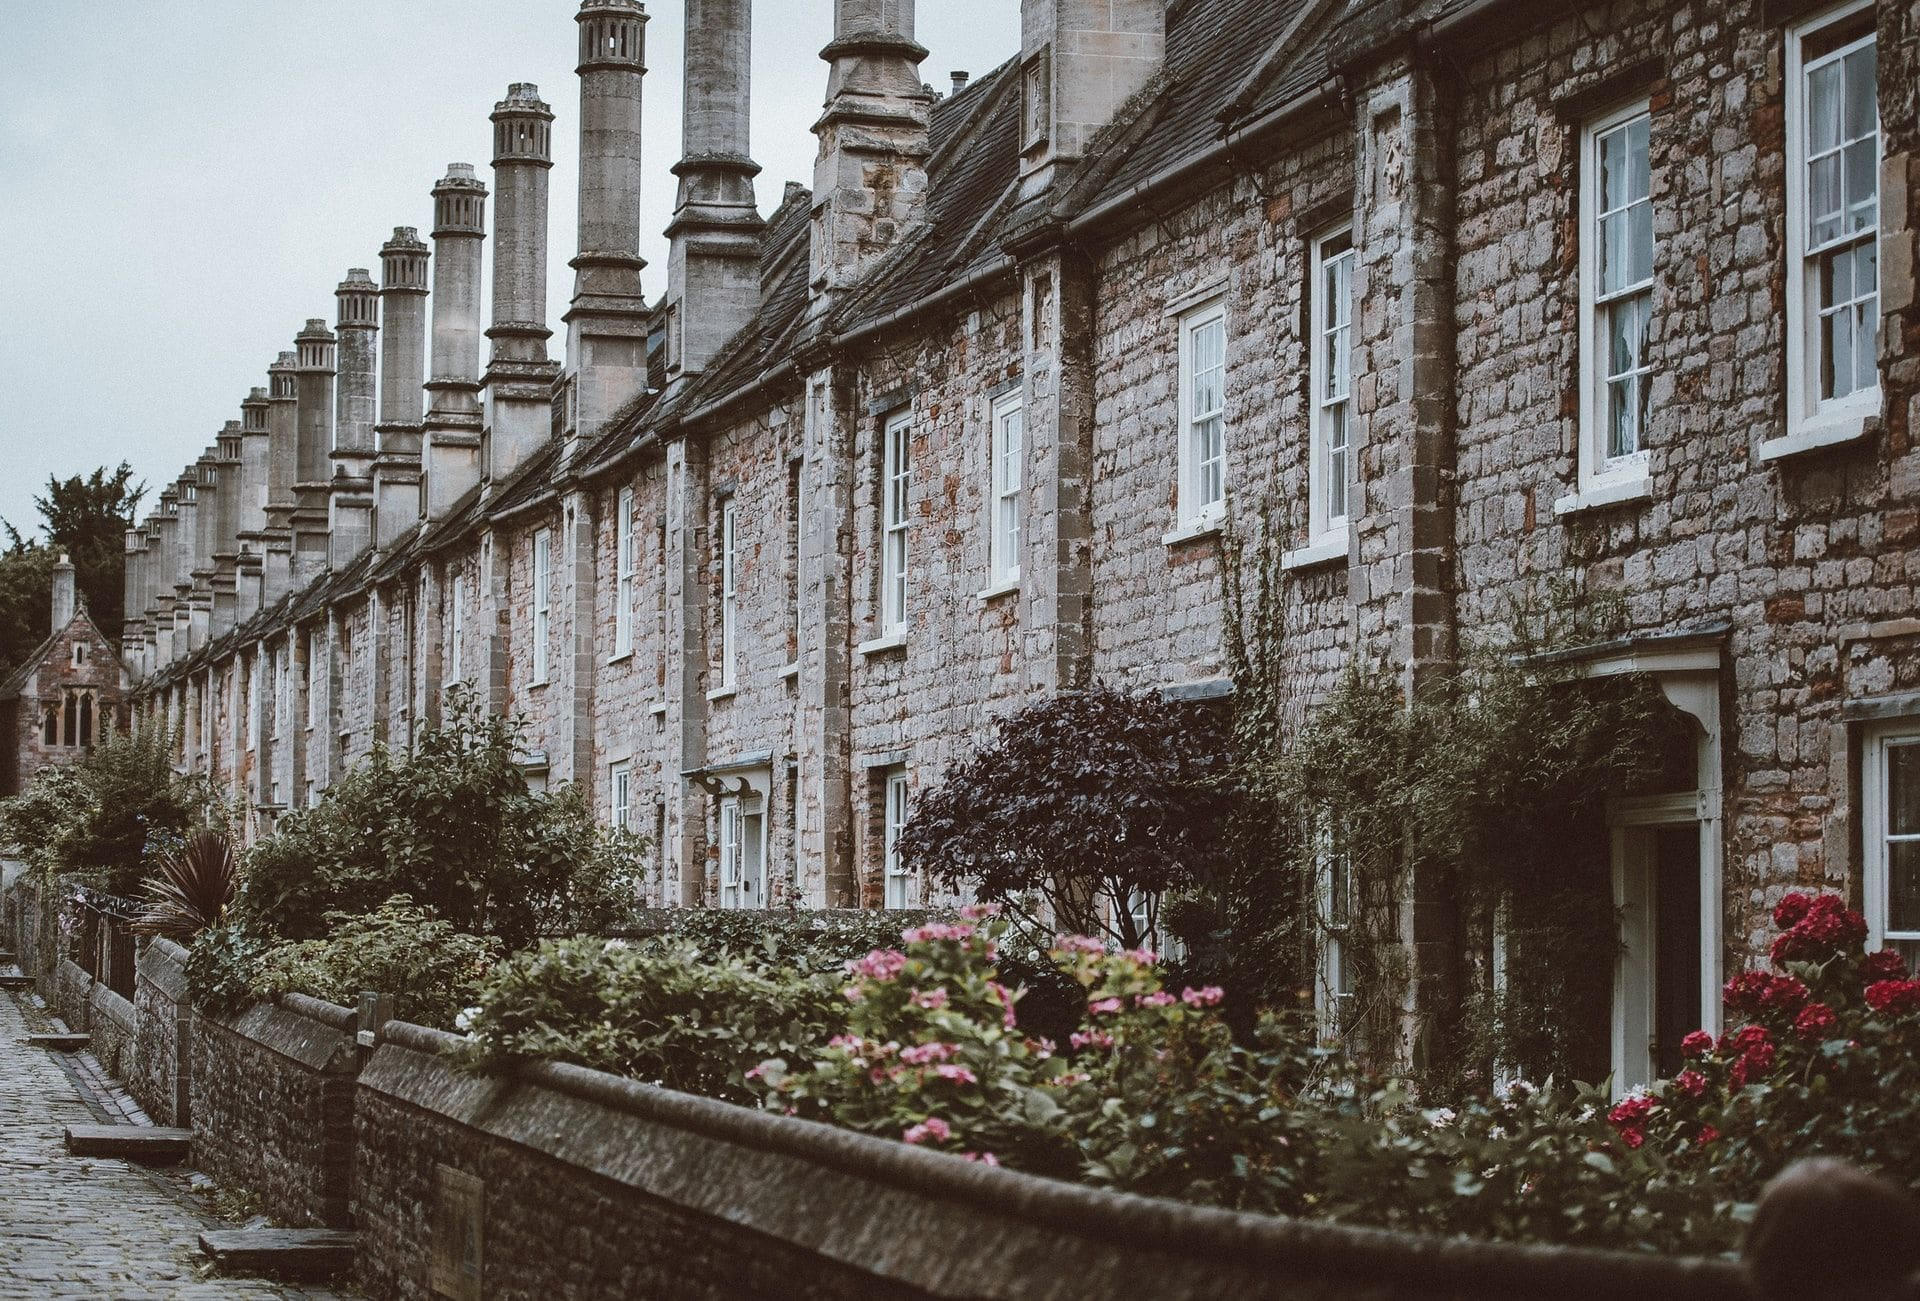 row-of-old-historic-terraced-houses-in-wells-somerset-england-in-winter